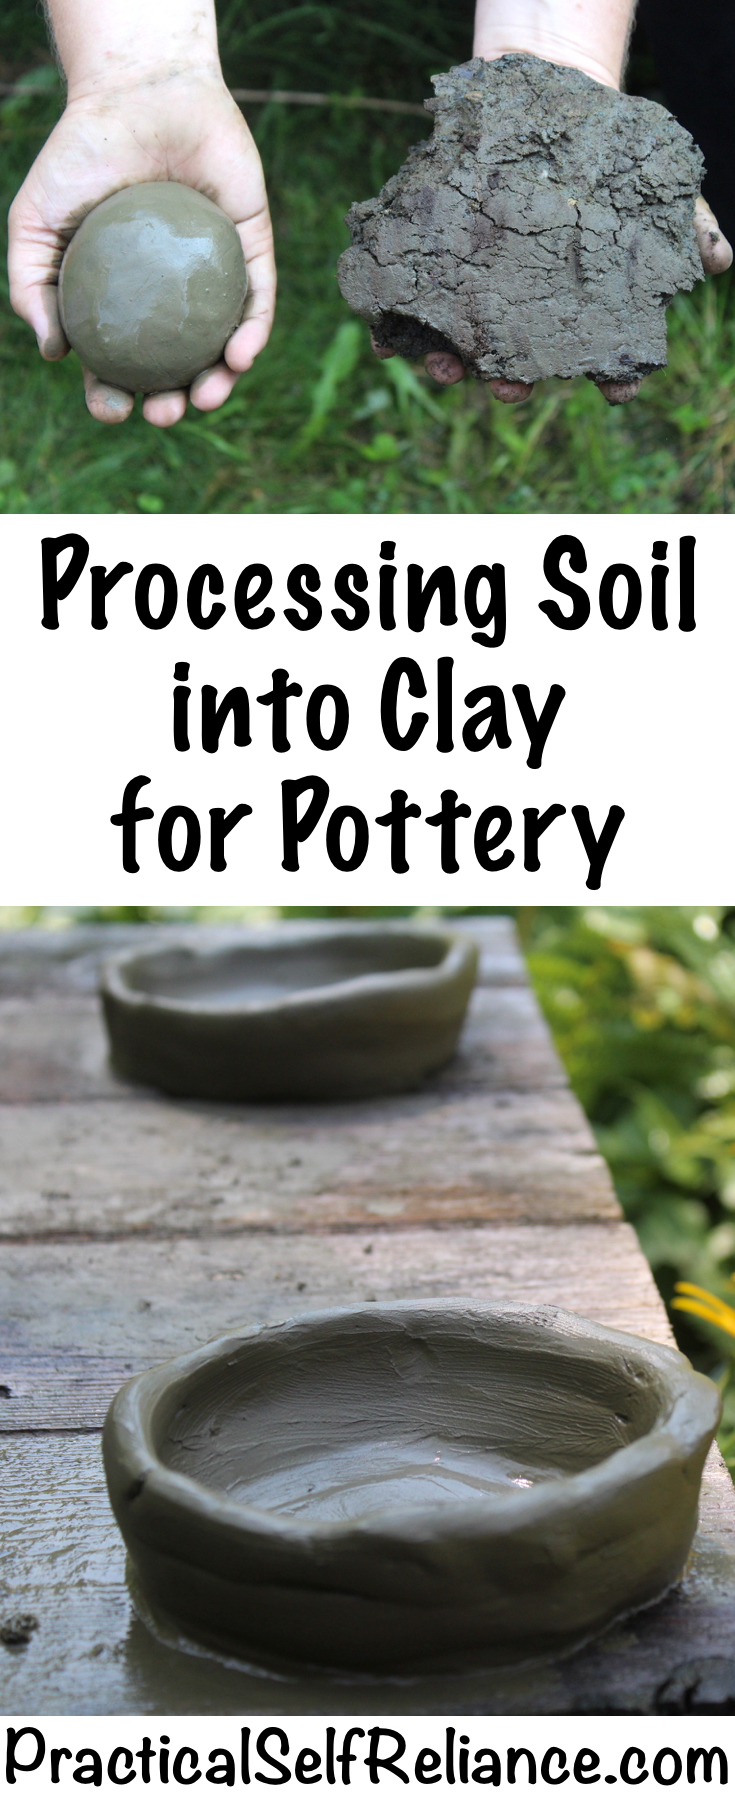 Processing Soil into Clay for Pottery ~ How to Make Clay from Soil